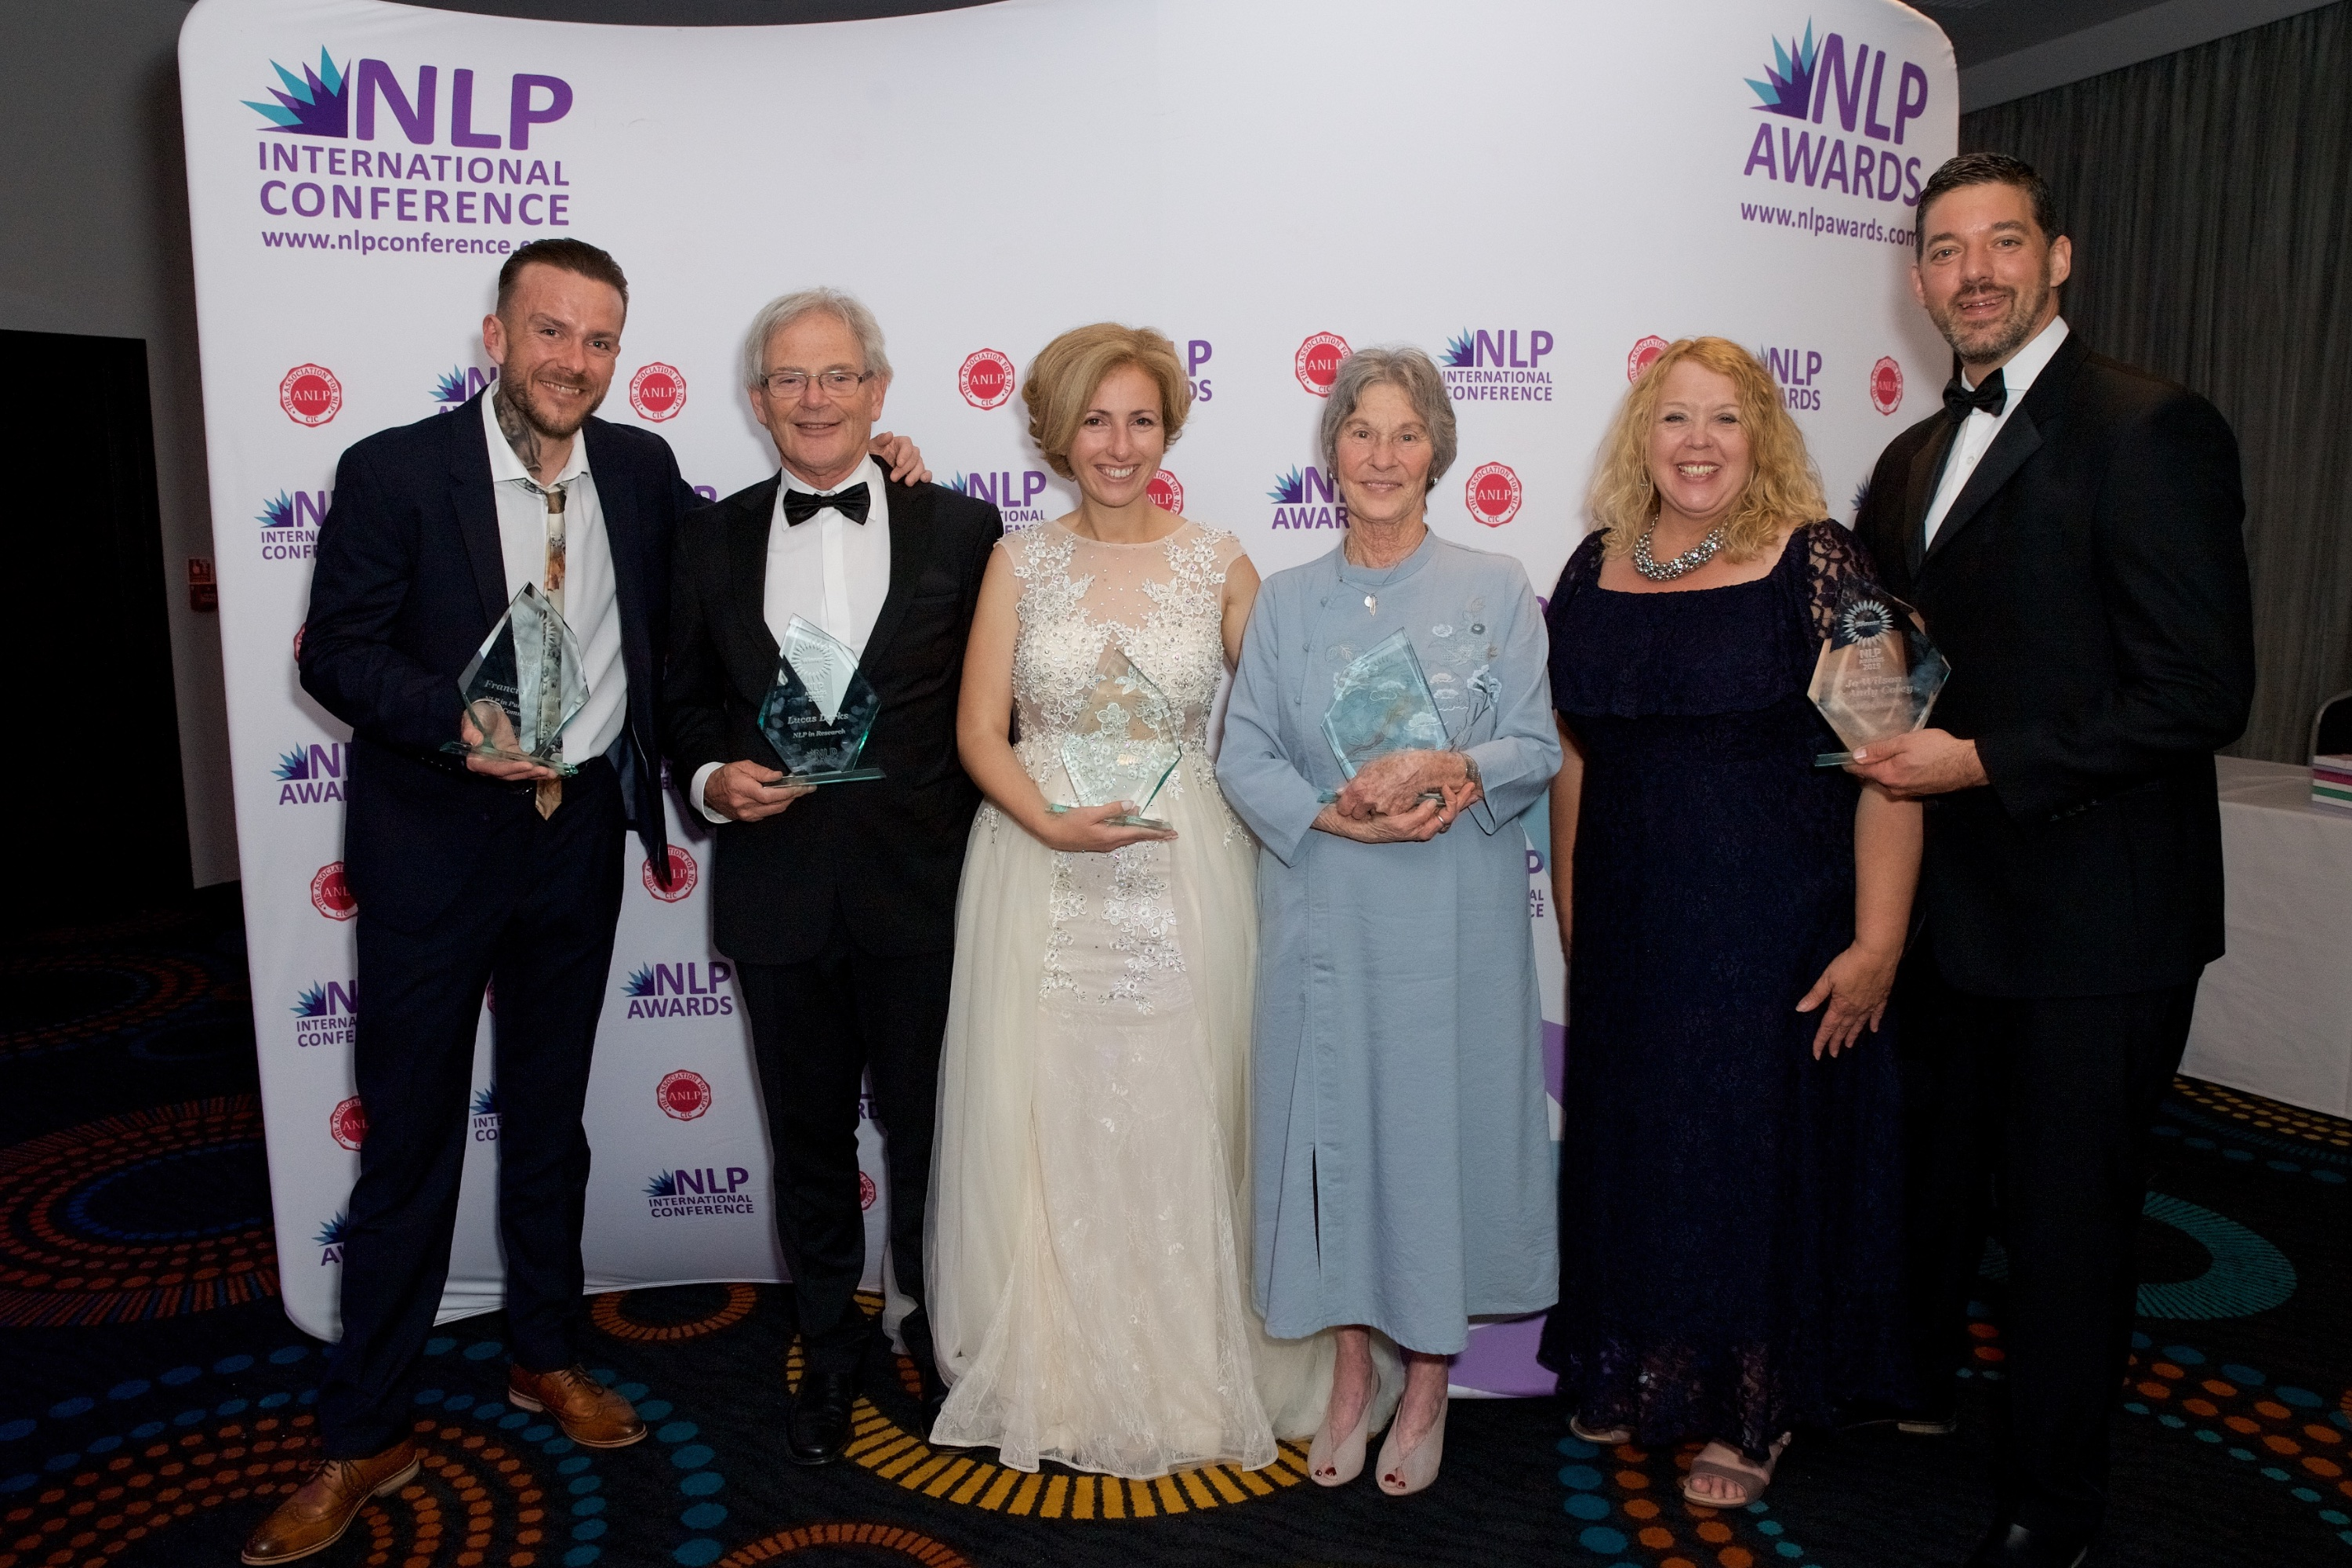 2019 NLP Award Winners